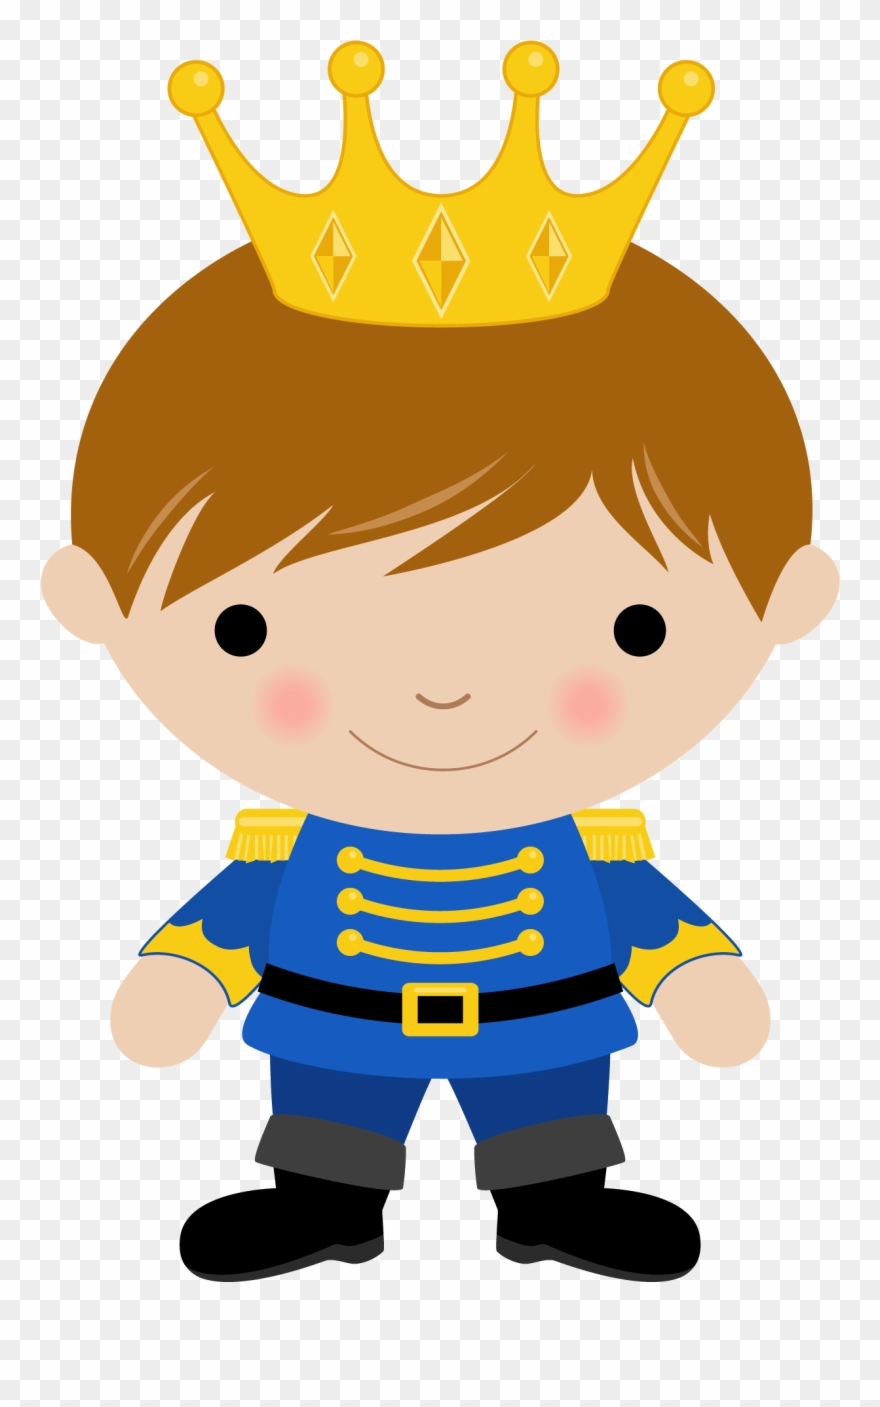 Printable Crafts, Printables, Prince Crown, Prince.